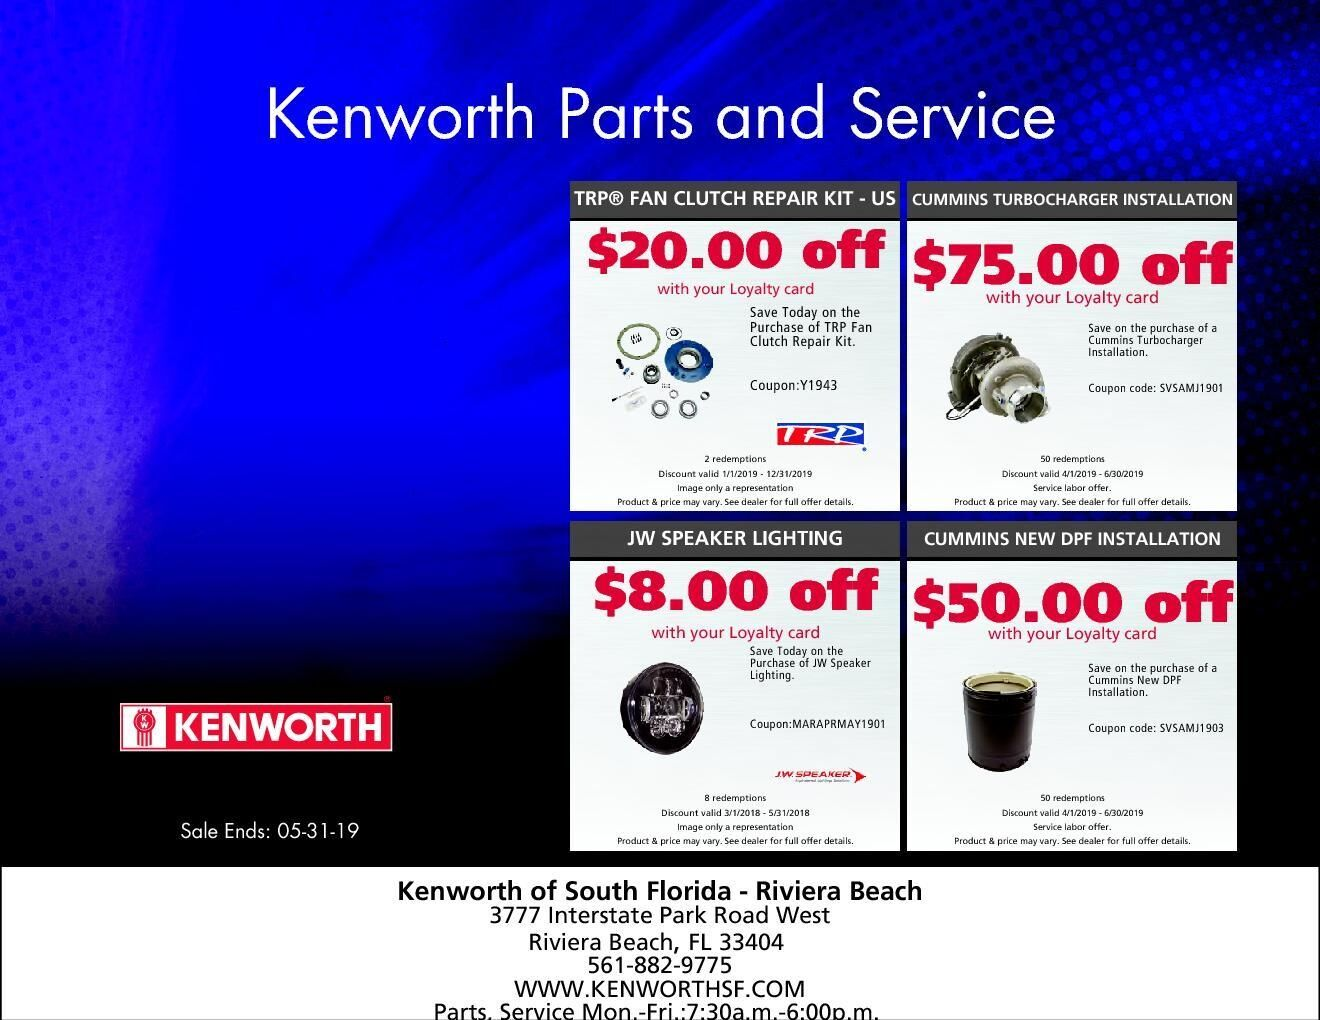 Kenworth Parts & Service Promo RB May 2019